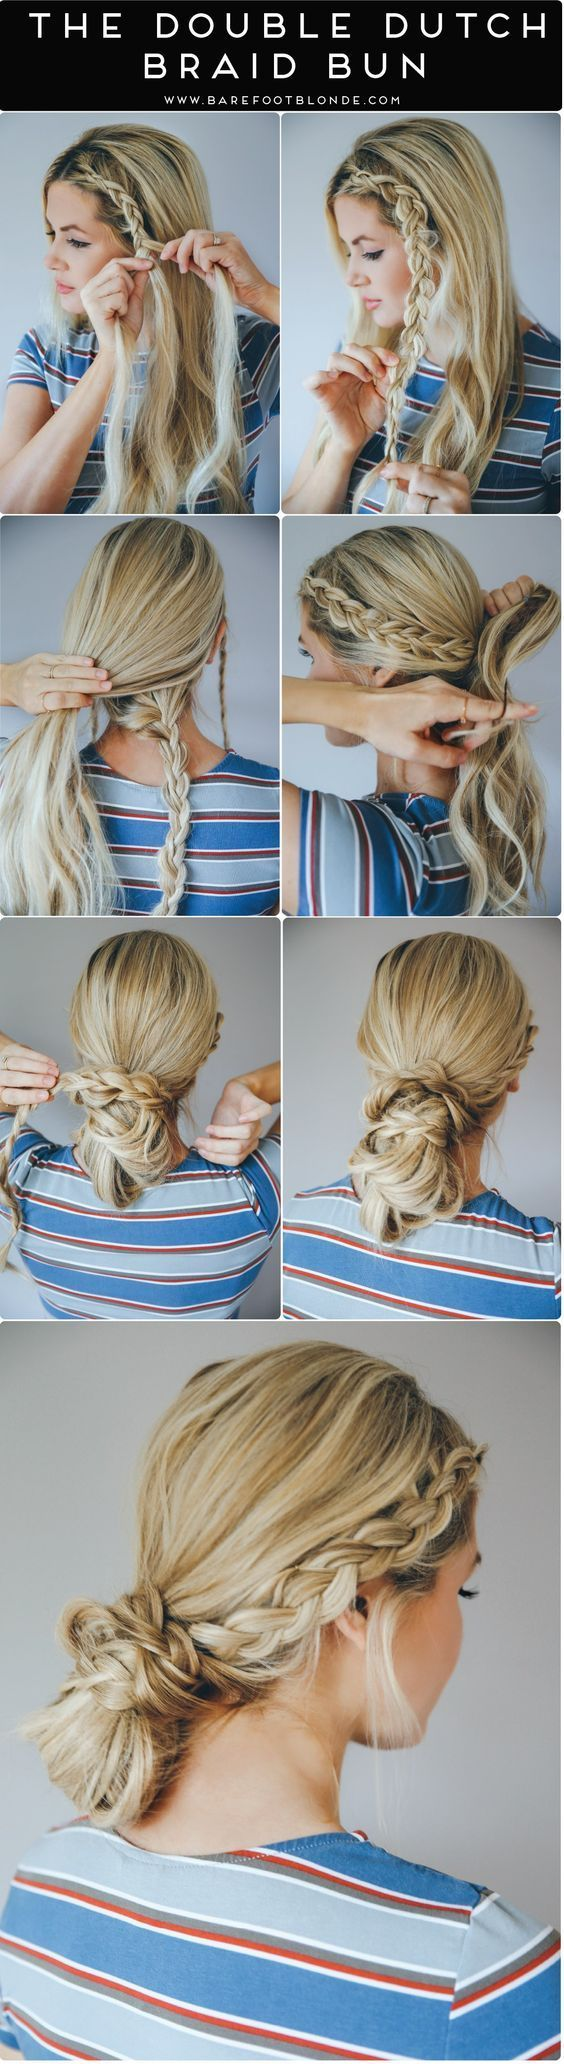 Pretty Braided Crown Hairstyle Tutorials and Ideas / http://www.himisspuff.com/easy-diy-braided-hairstyles-tutorials/53/